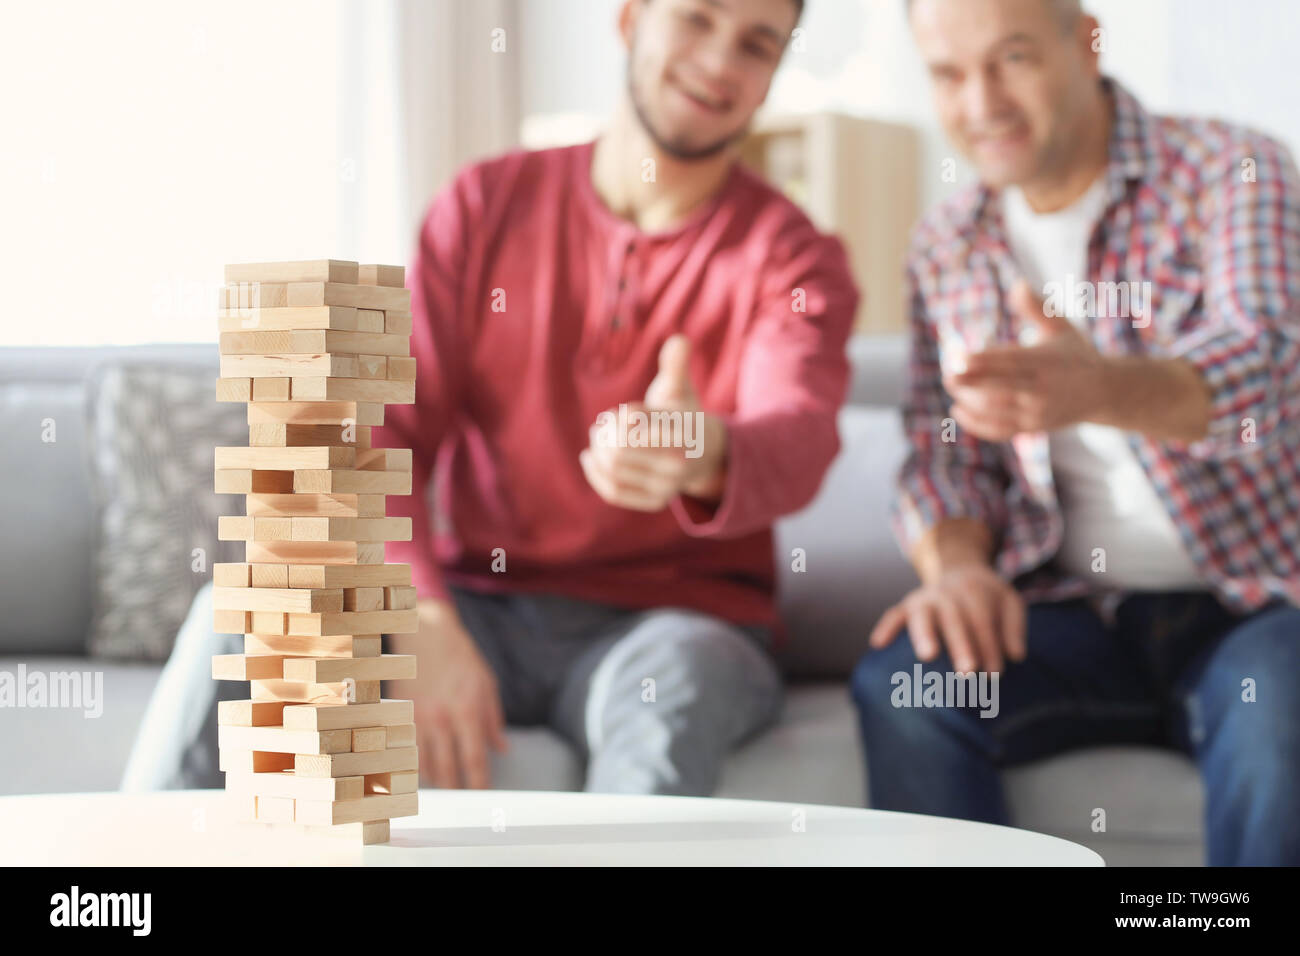 Board game and blurred men on background. Dad and son spending time together - Stock Image